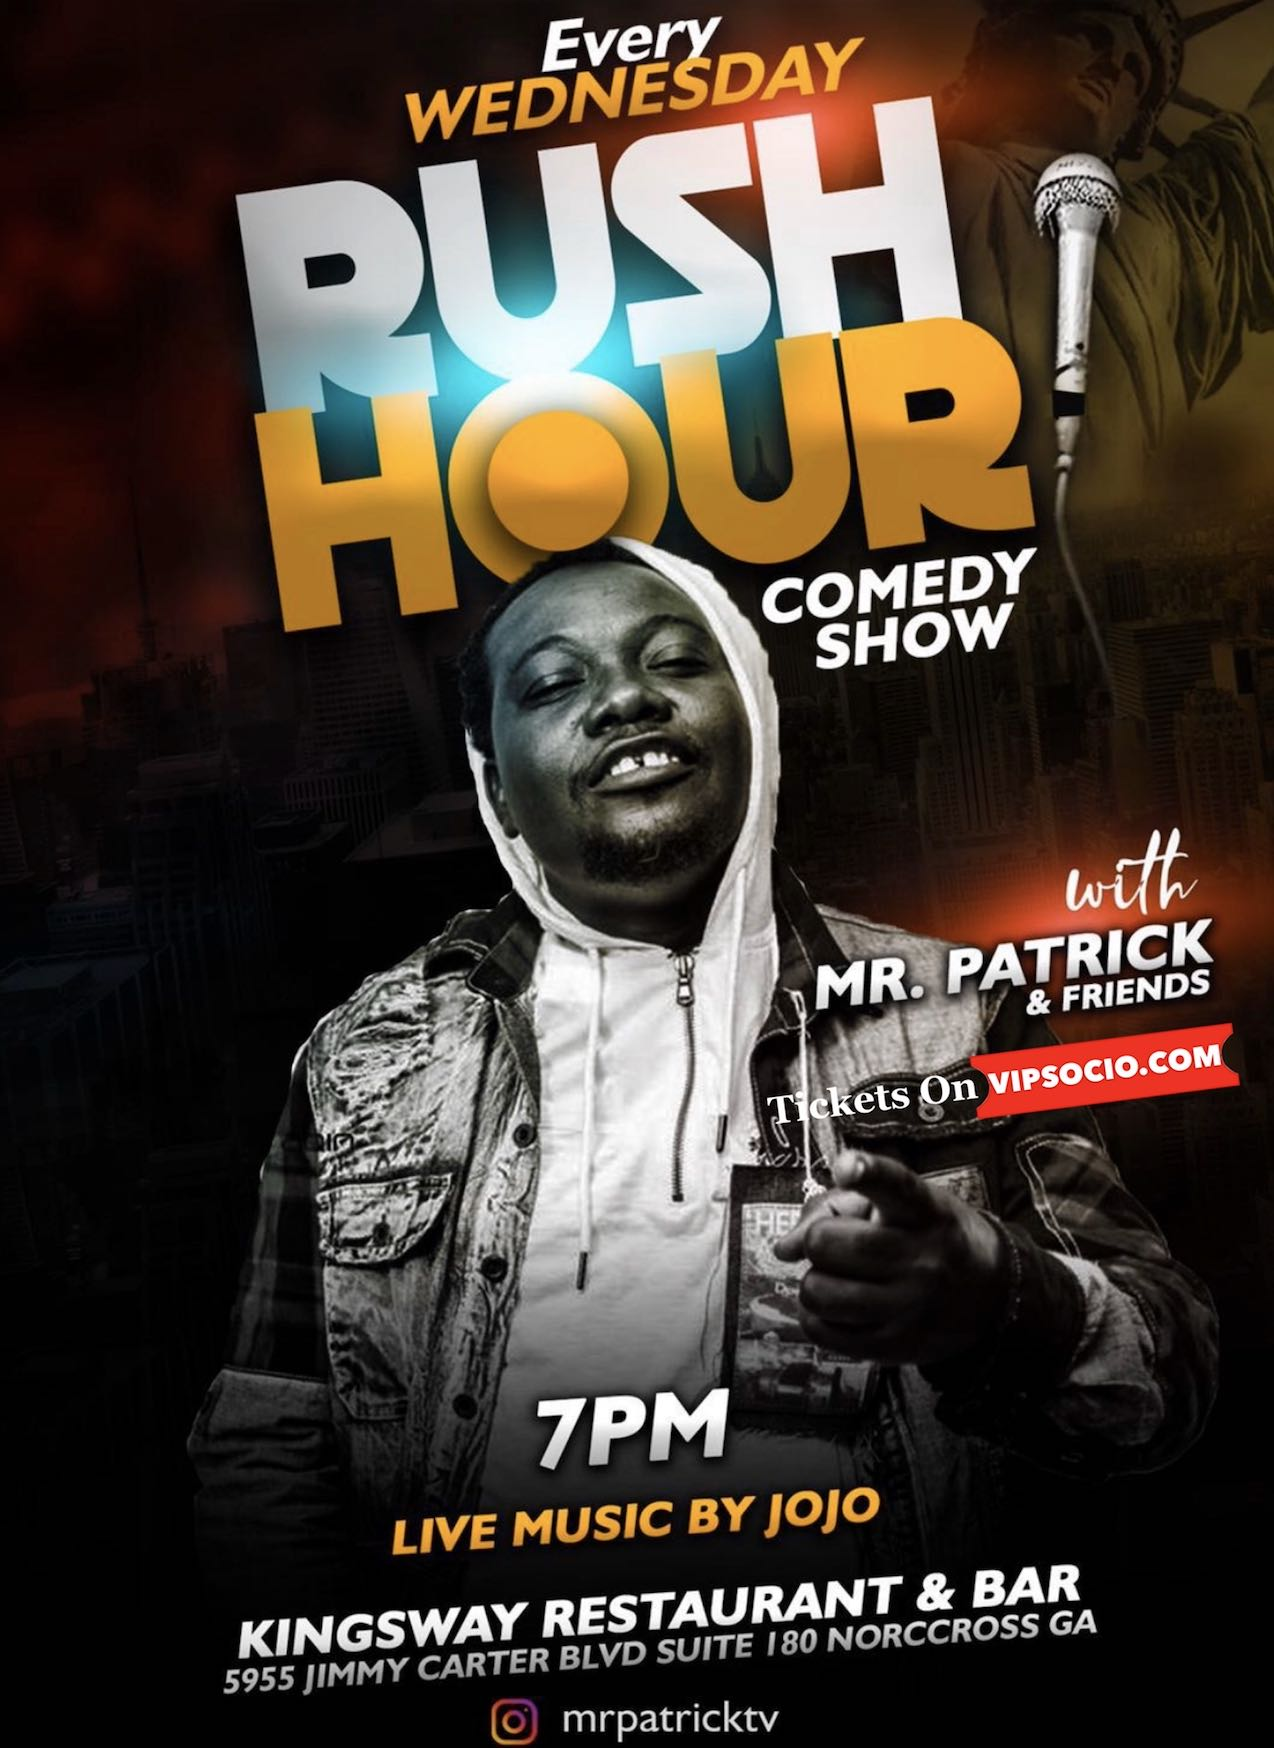 Rush Hour Comedy Show Hosted by Mr Patrick